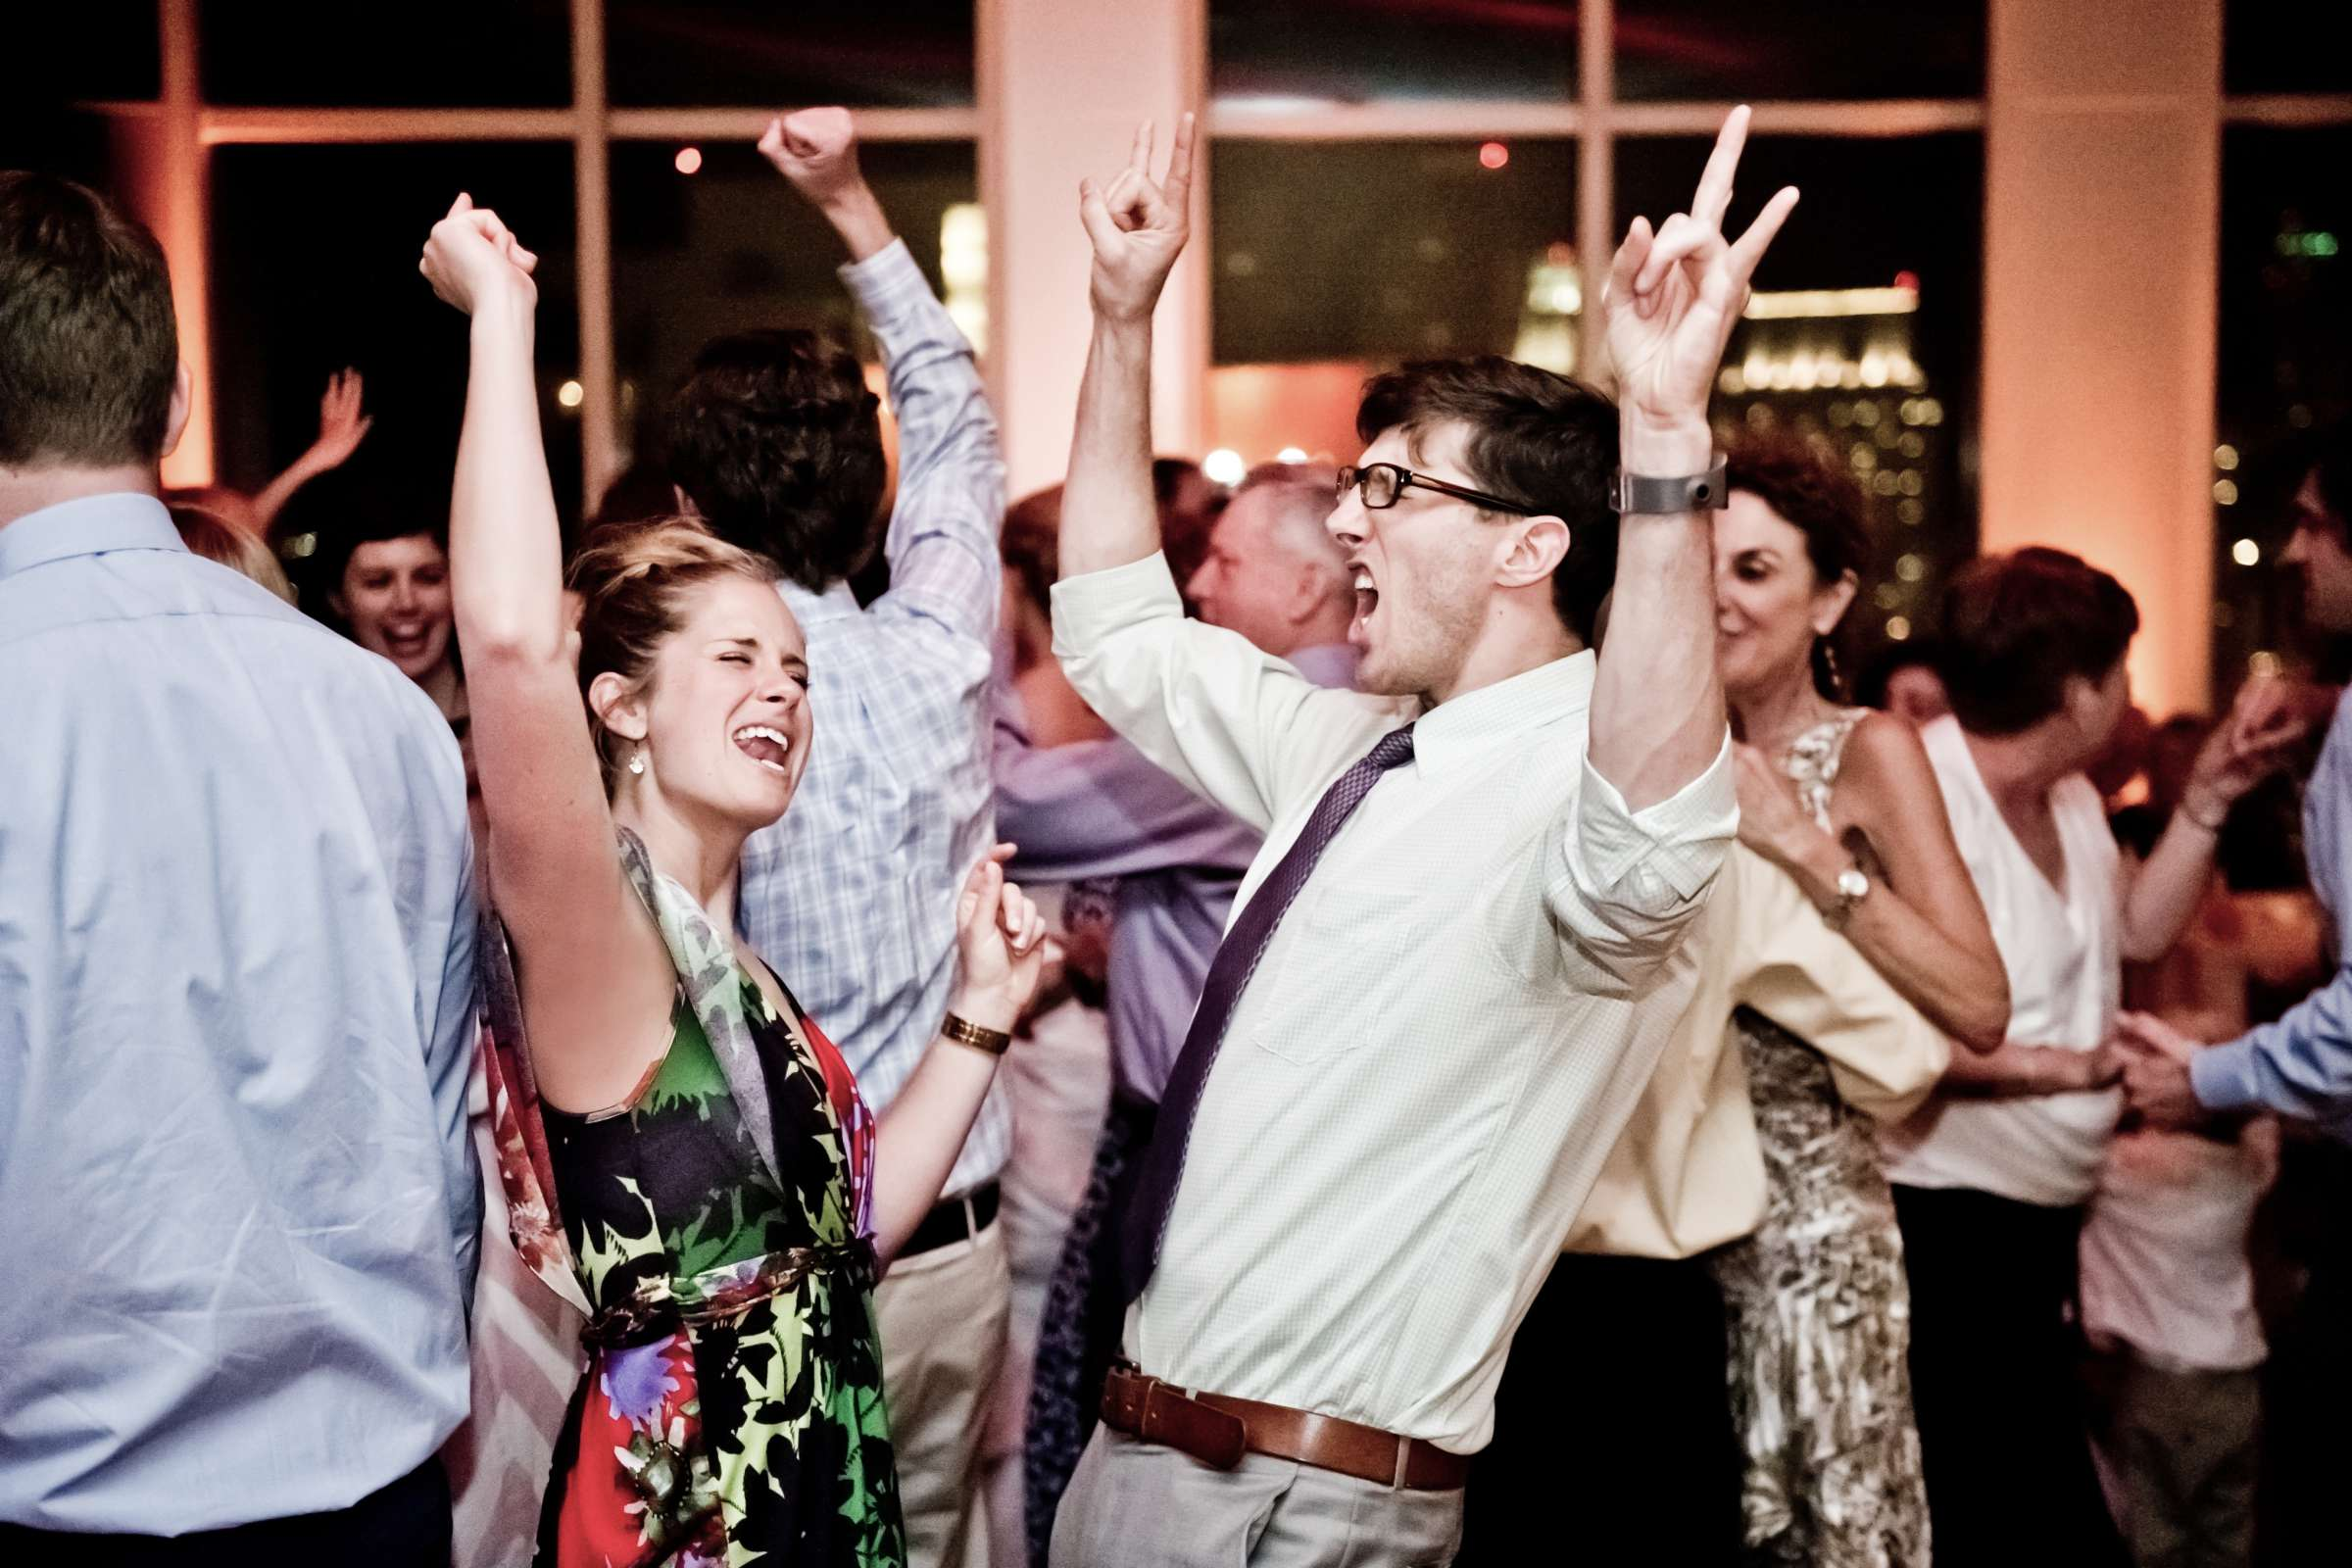 Dancing at Ultimate Skybox Wedding, Chelsea and Frank Wedding Photo #59 by True Photography